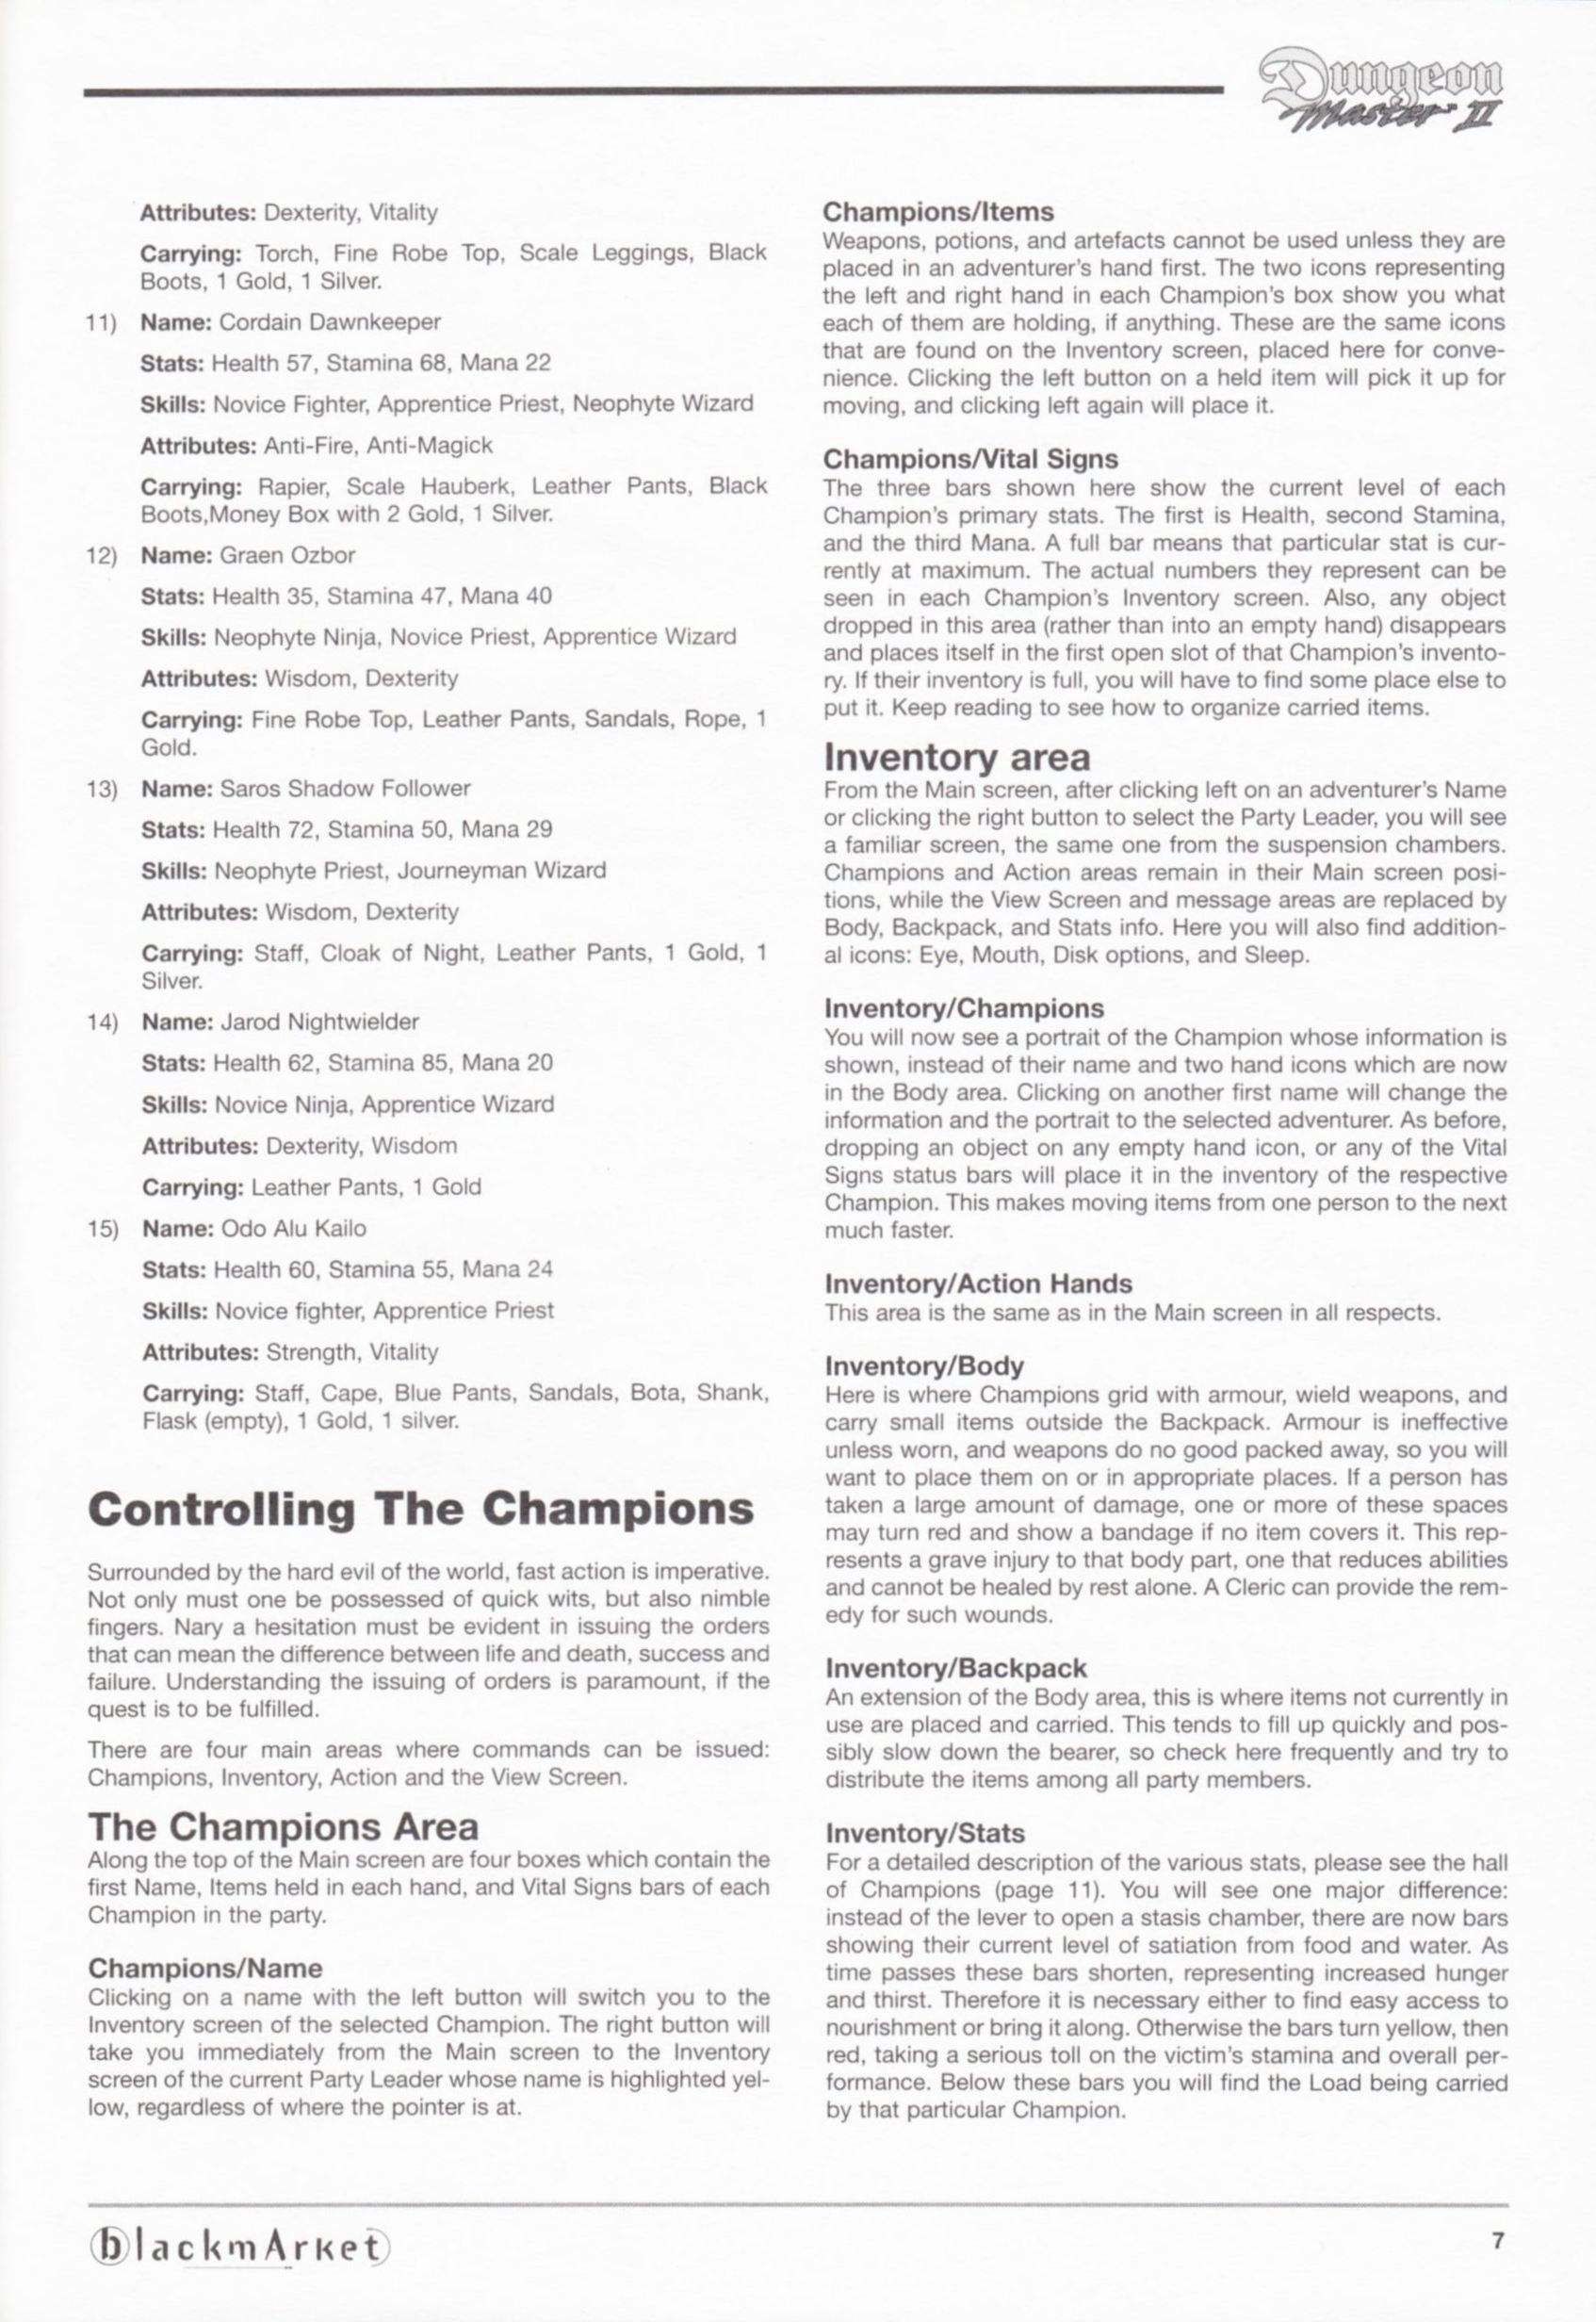 Game - Dungeon Master II - DE - PC - Blackmarket With Manual - Manual - Page 009 - Scan